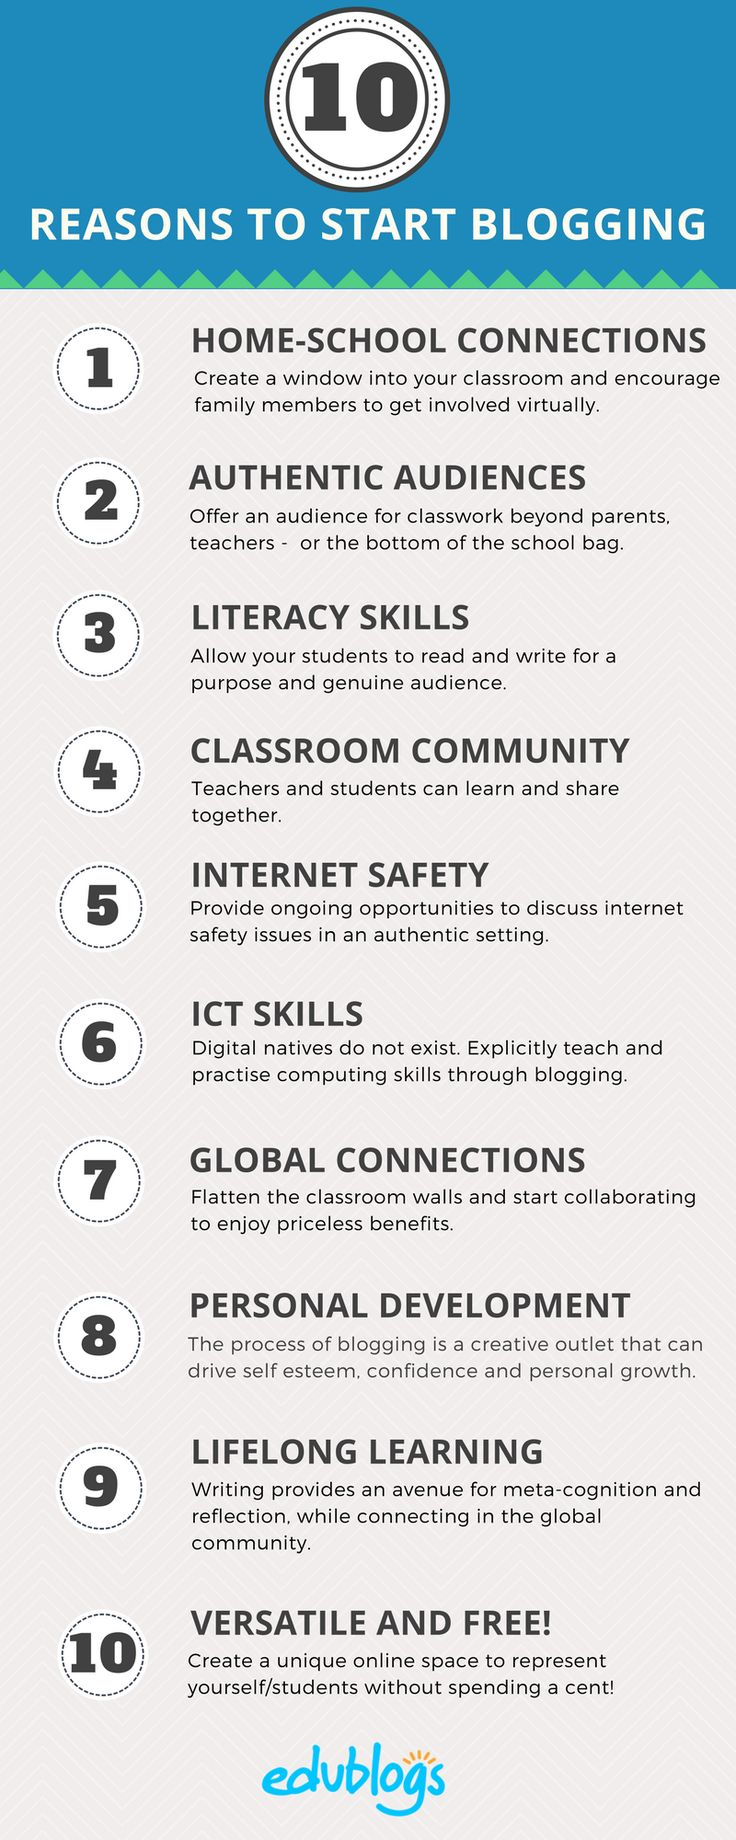 This is a summary of ten of the major benefits of using class or student blogs